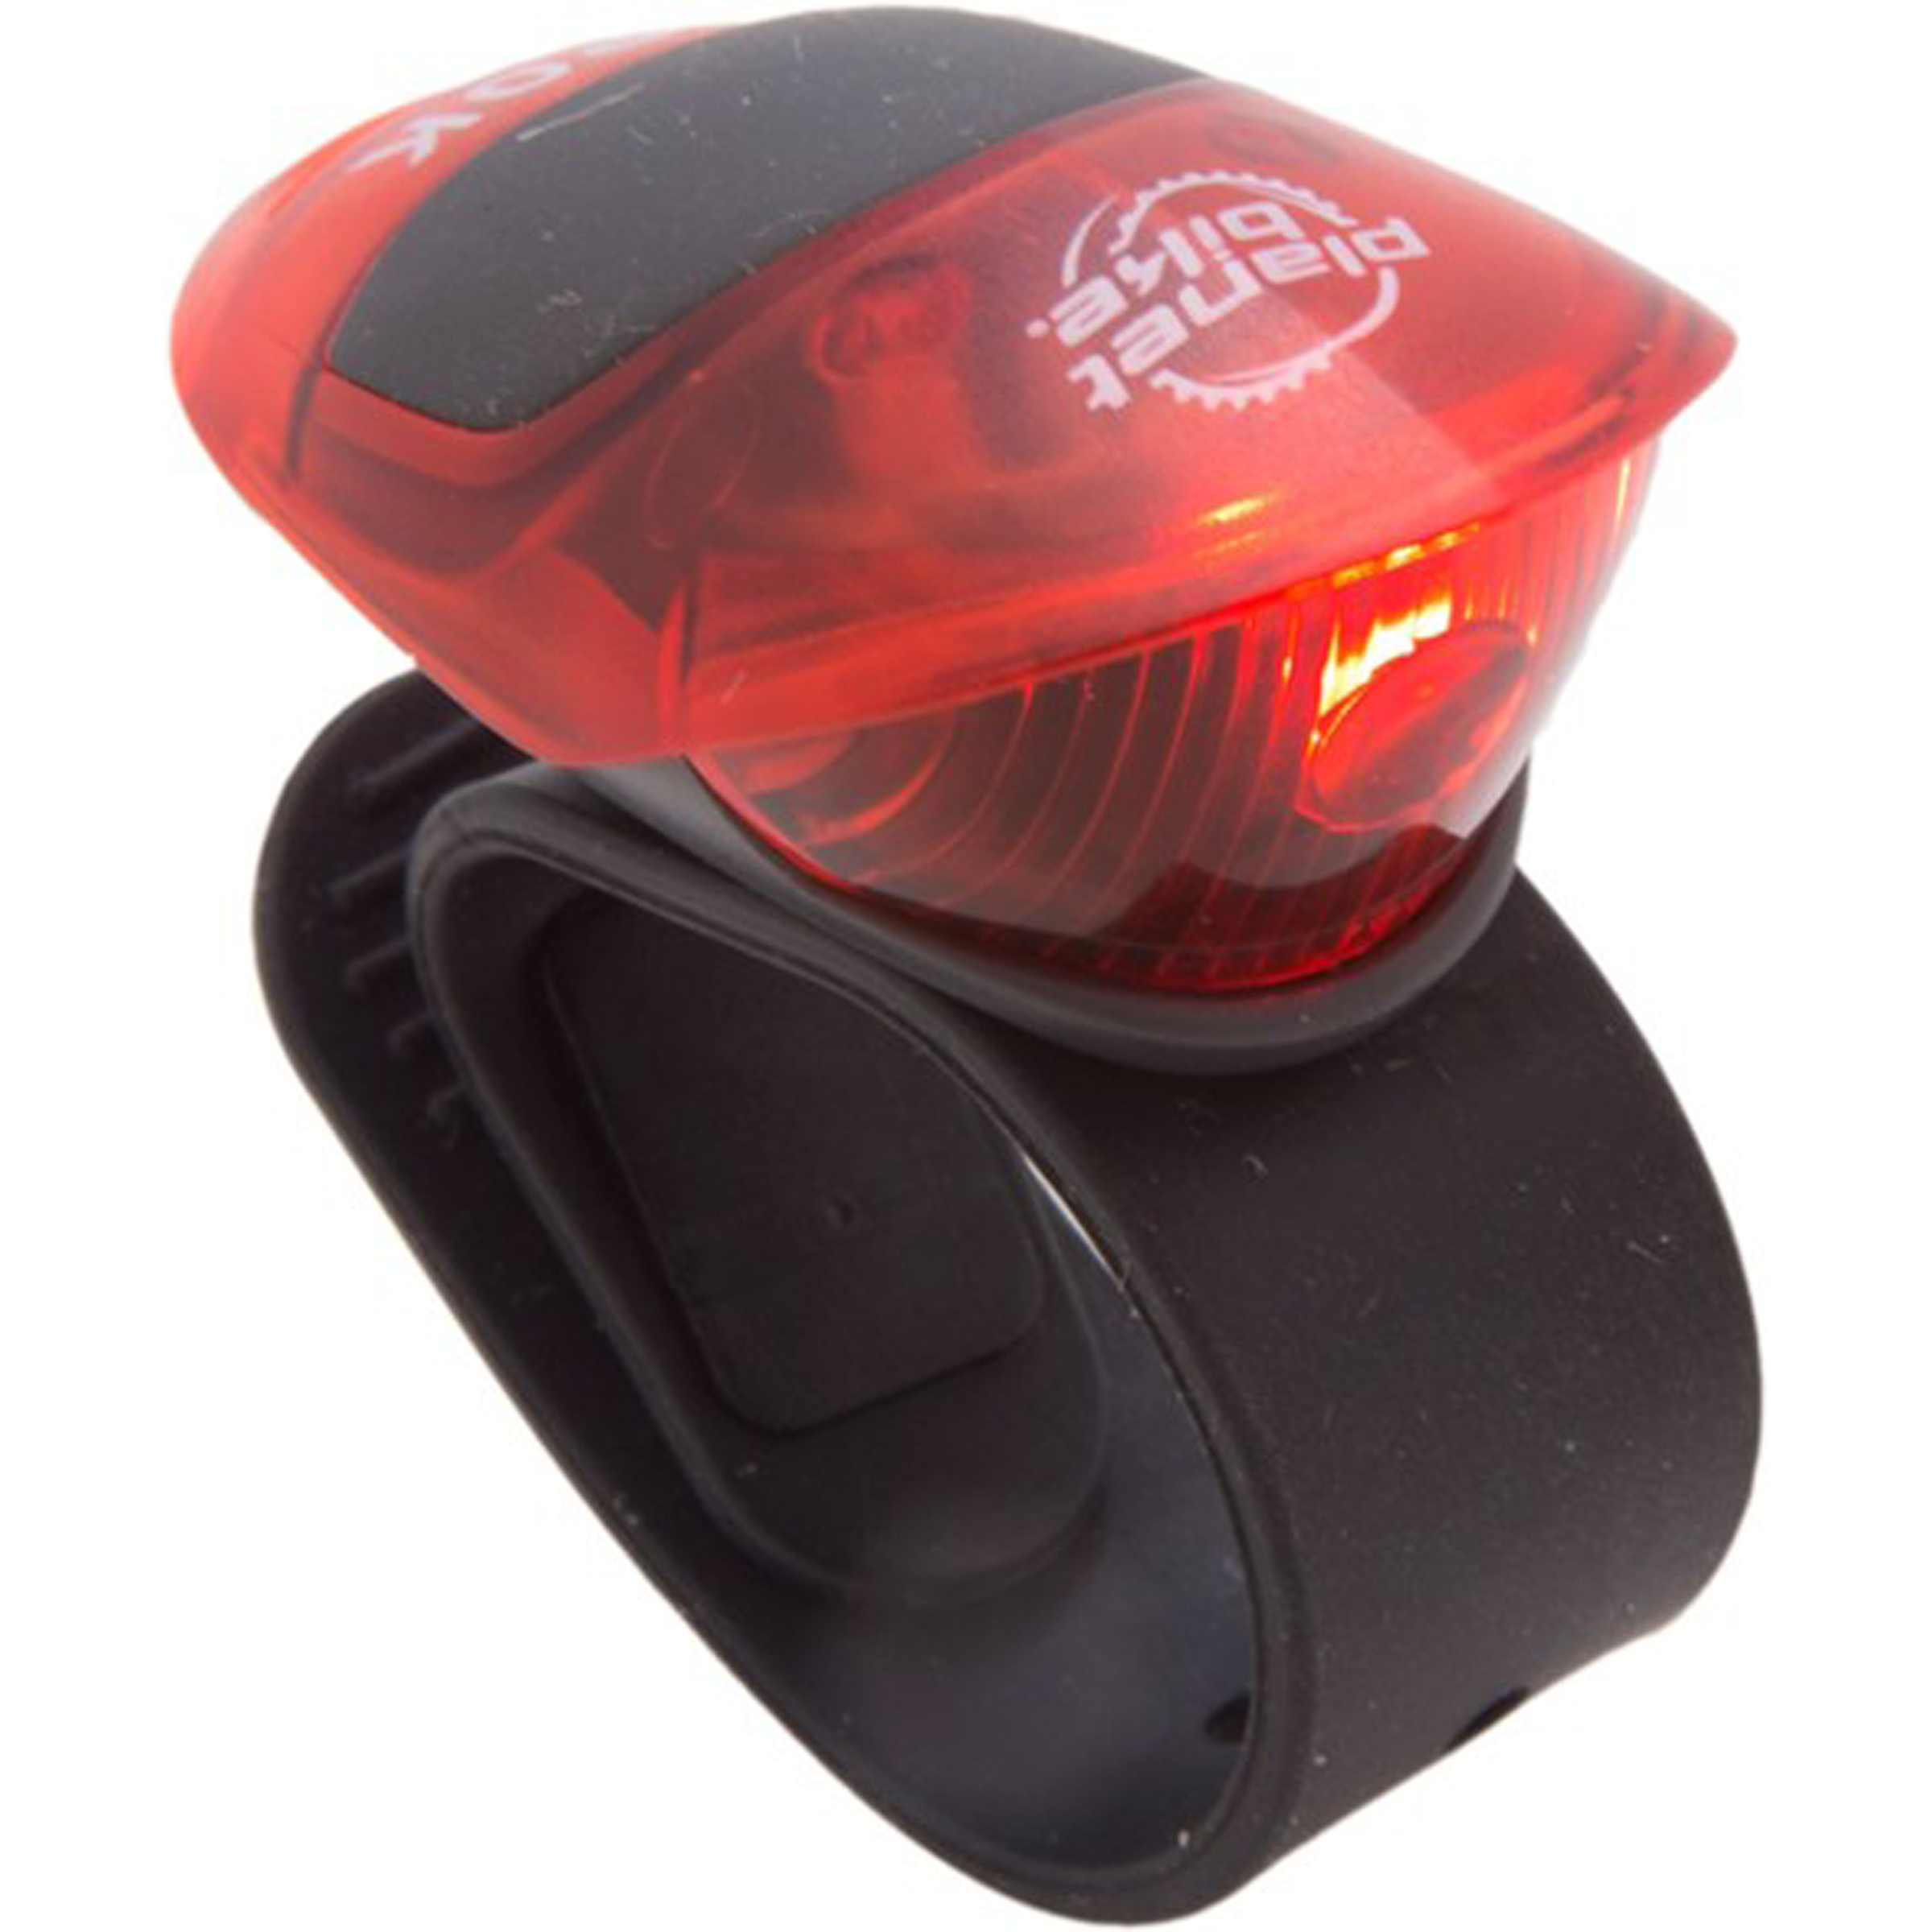 Planet Bike Spok Rear Light - $13.00